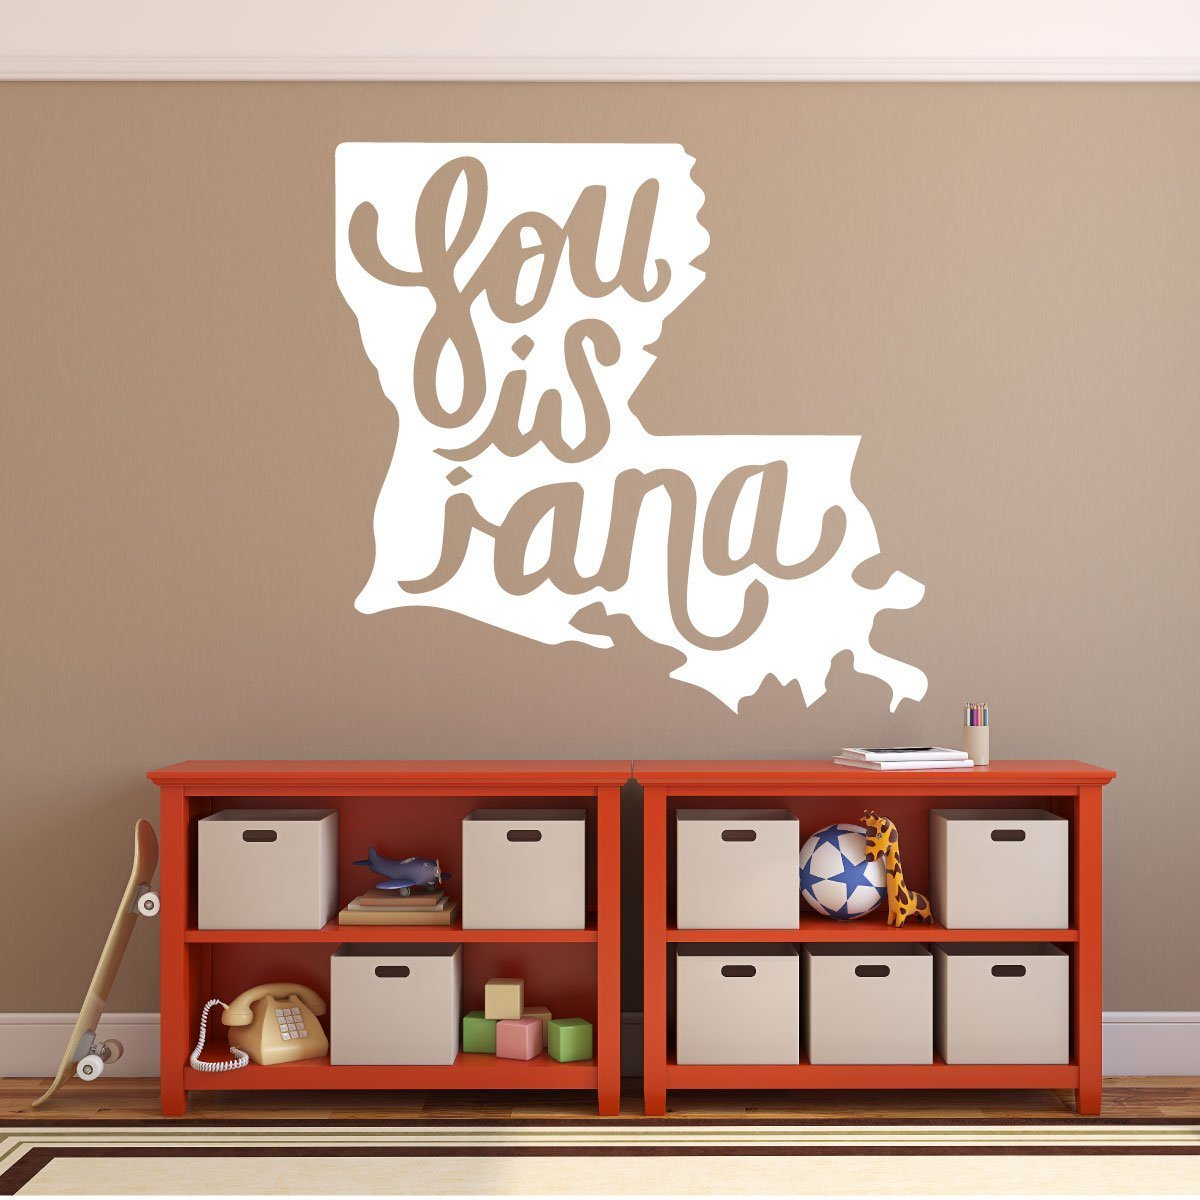 Louisiana Home Decor - State Vinyl Wall Decal with Louisiana in Cursive